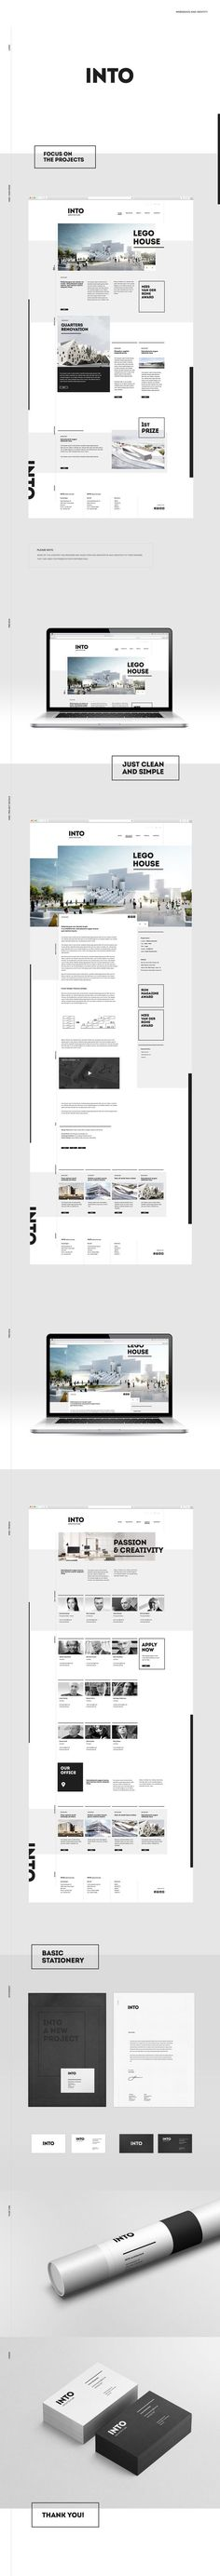 Simple Clean Minimalist Website Collection. Get similar web design service @ http://smallstereo.com